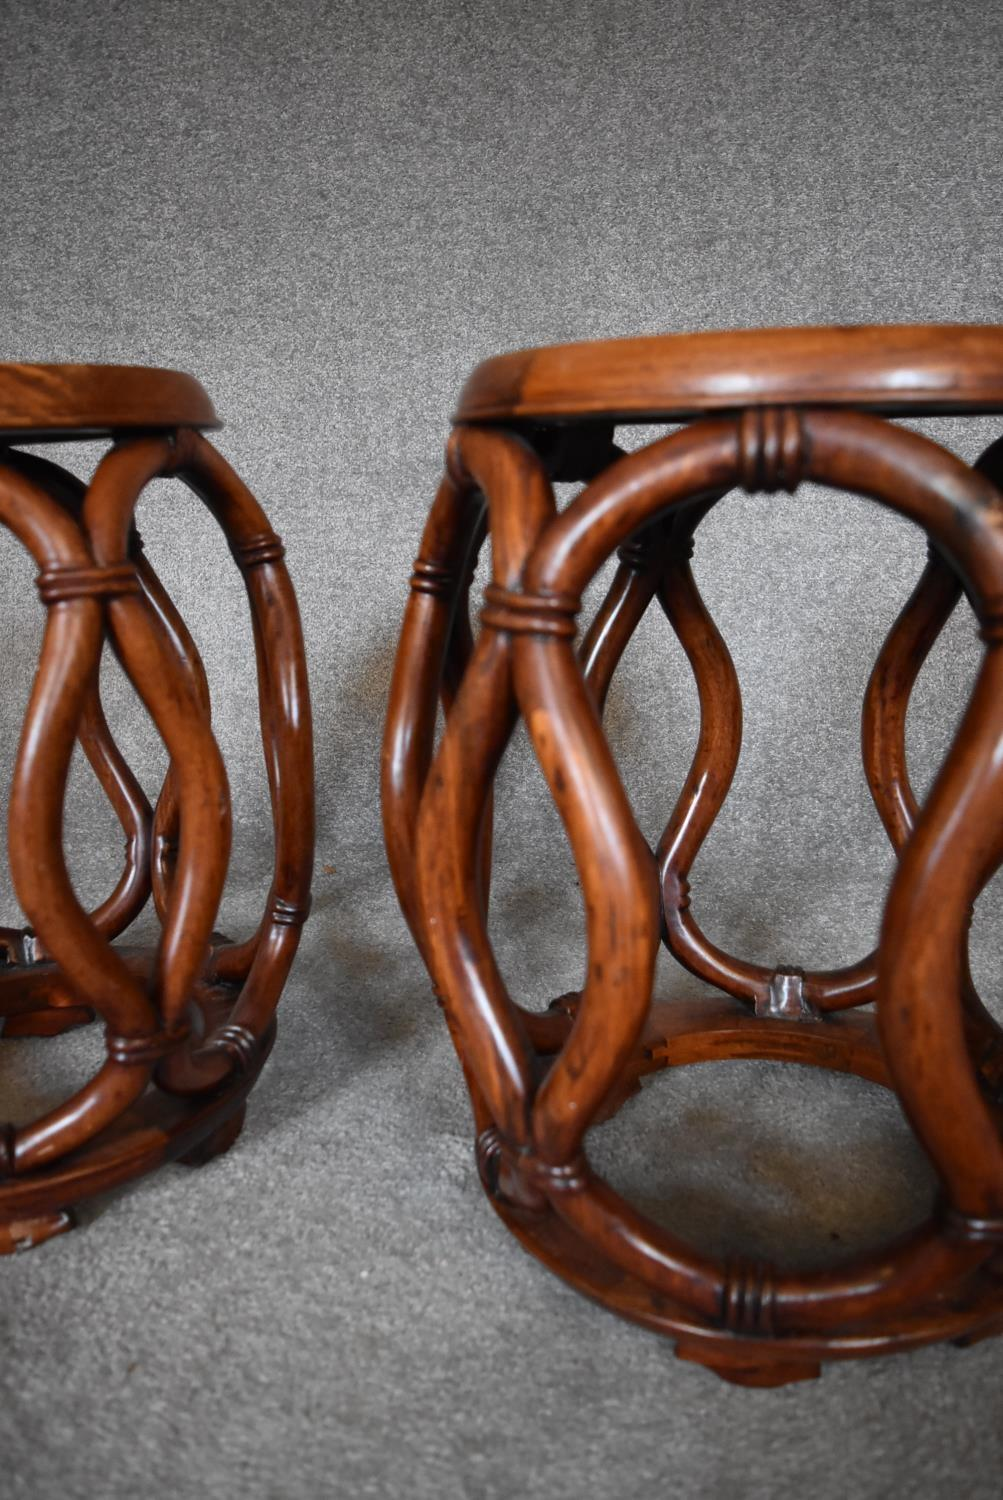 A pair of Chinese rosewood and mother of pearl inlaid barrel shaped stools with latticework sides. - Image 4 of 4